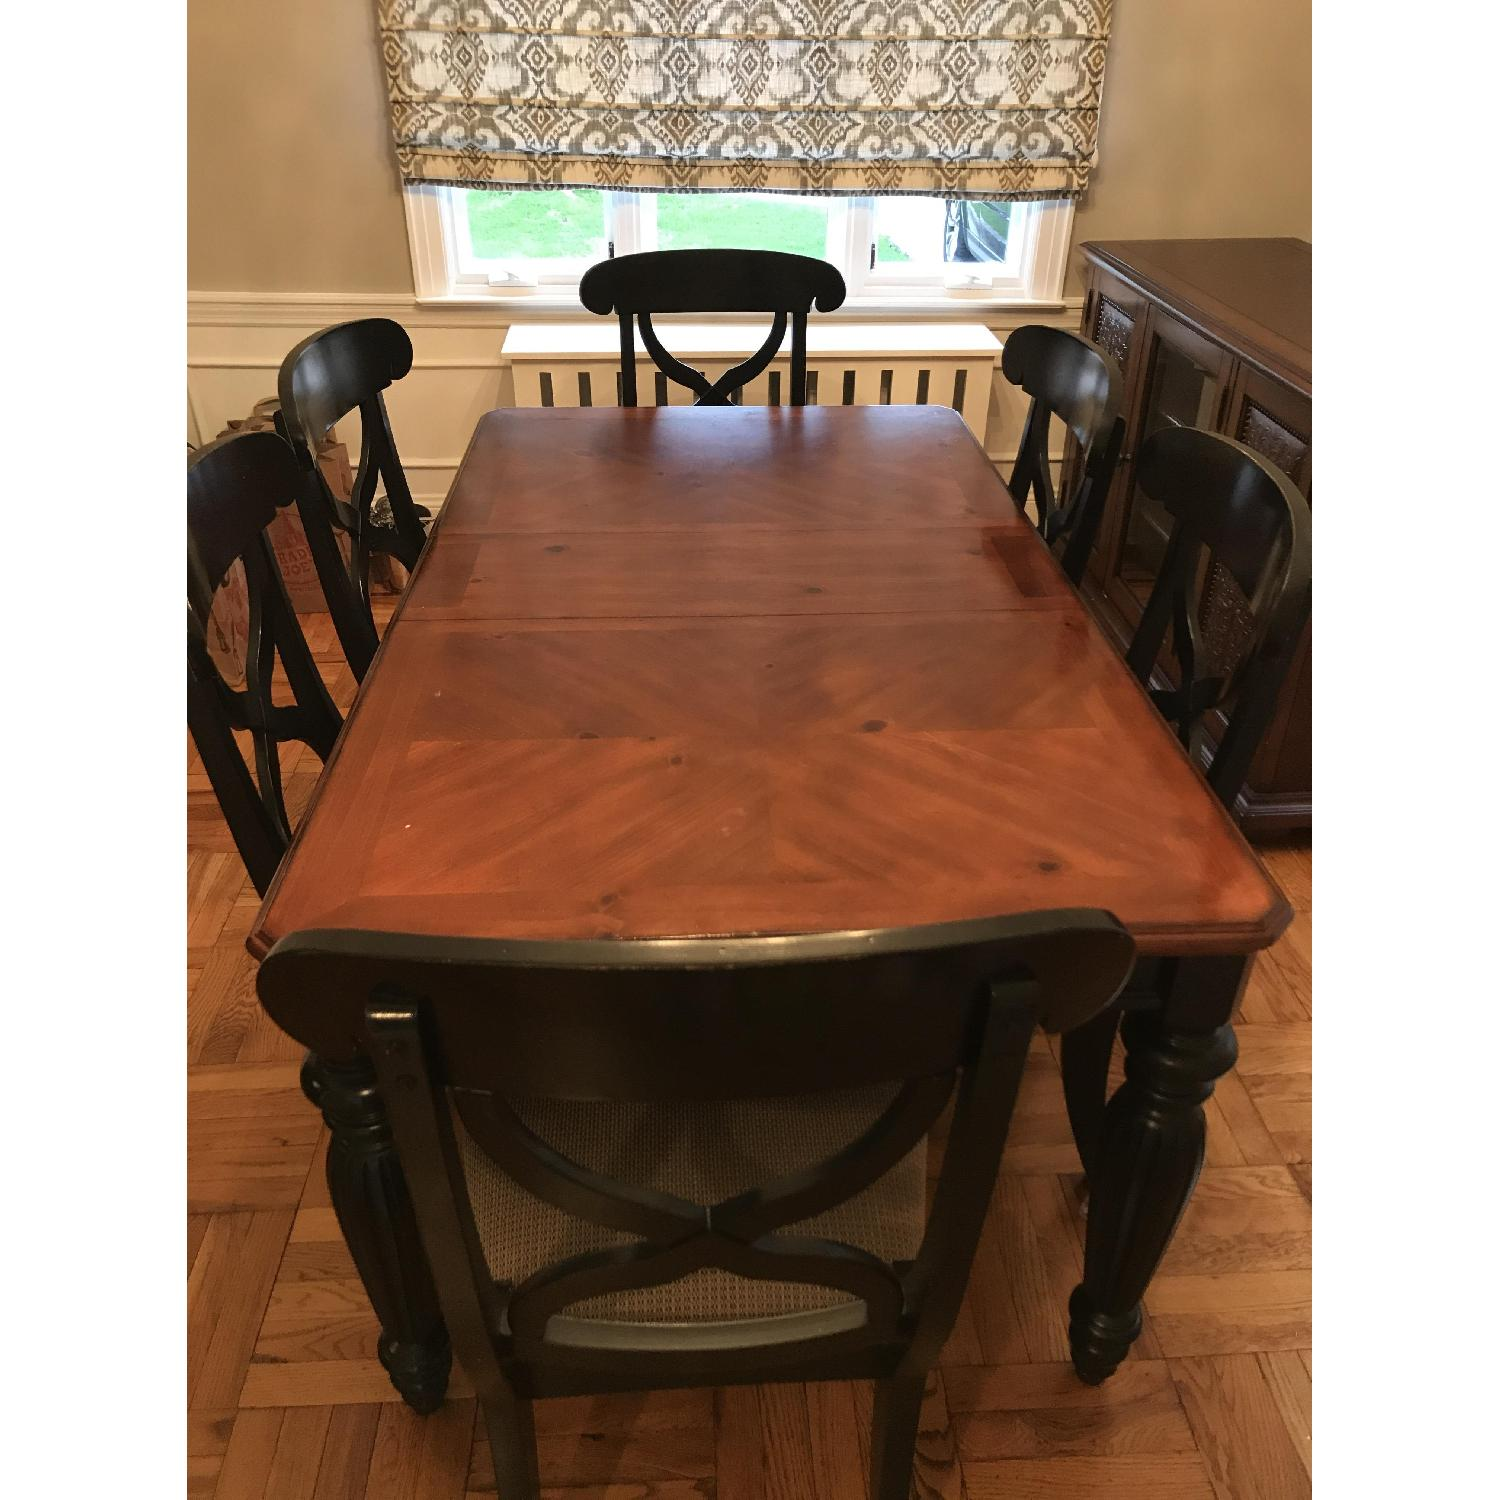 Brown/Black Wood Dining Table w/ 6 Chairs-0